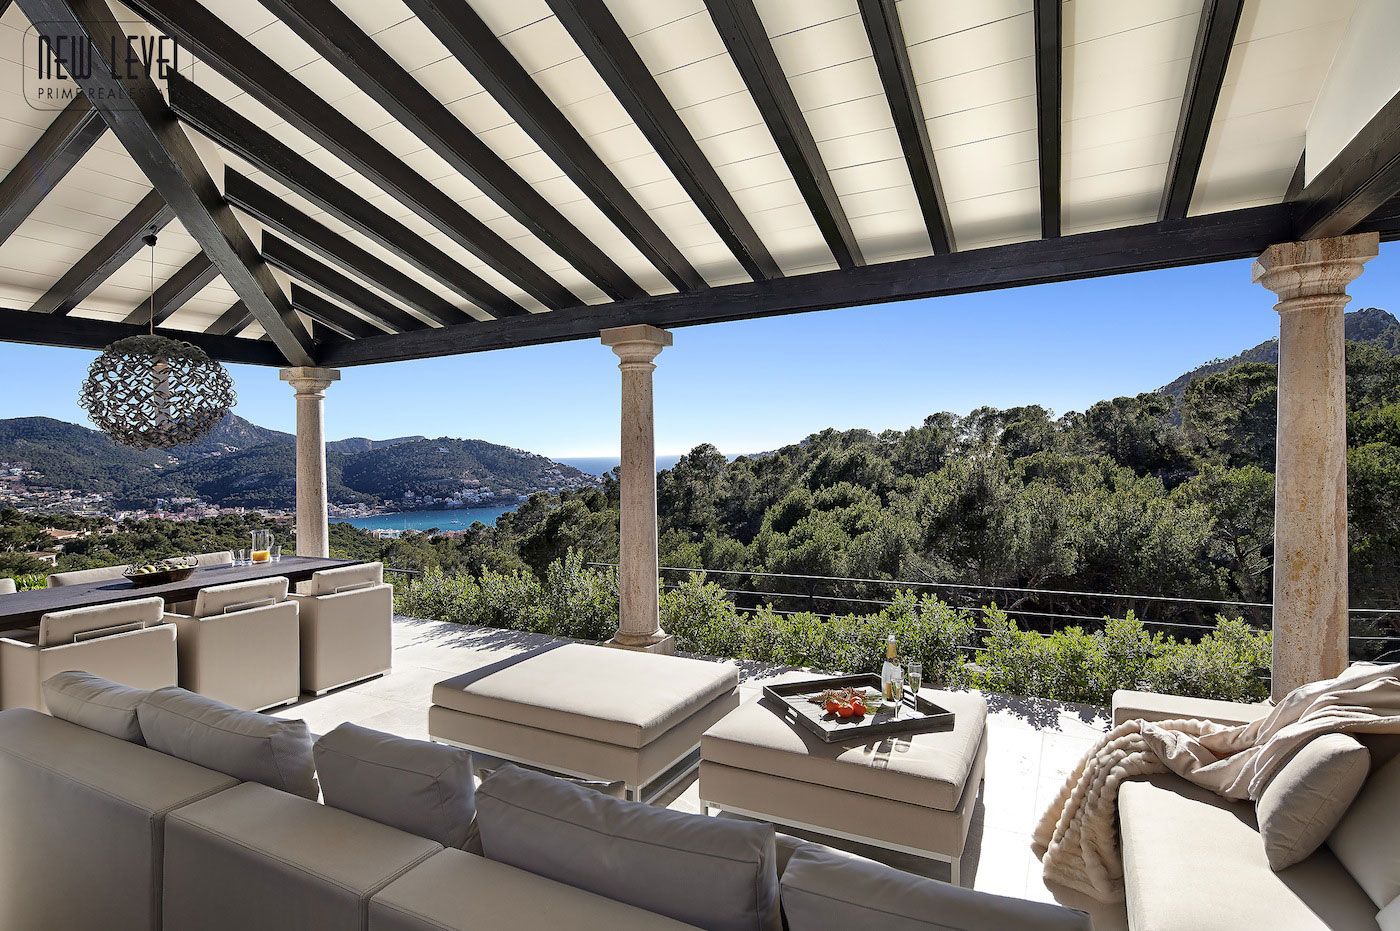 Outdoor Living, Veranda, Views, Fabulous Villa in Puerto de Andratx, Mallorca